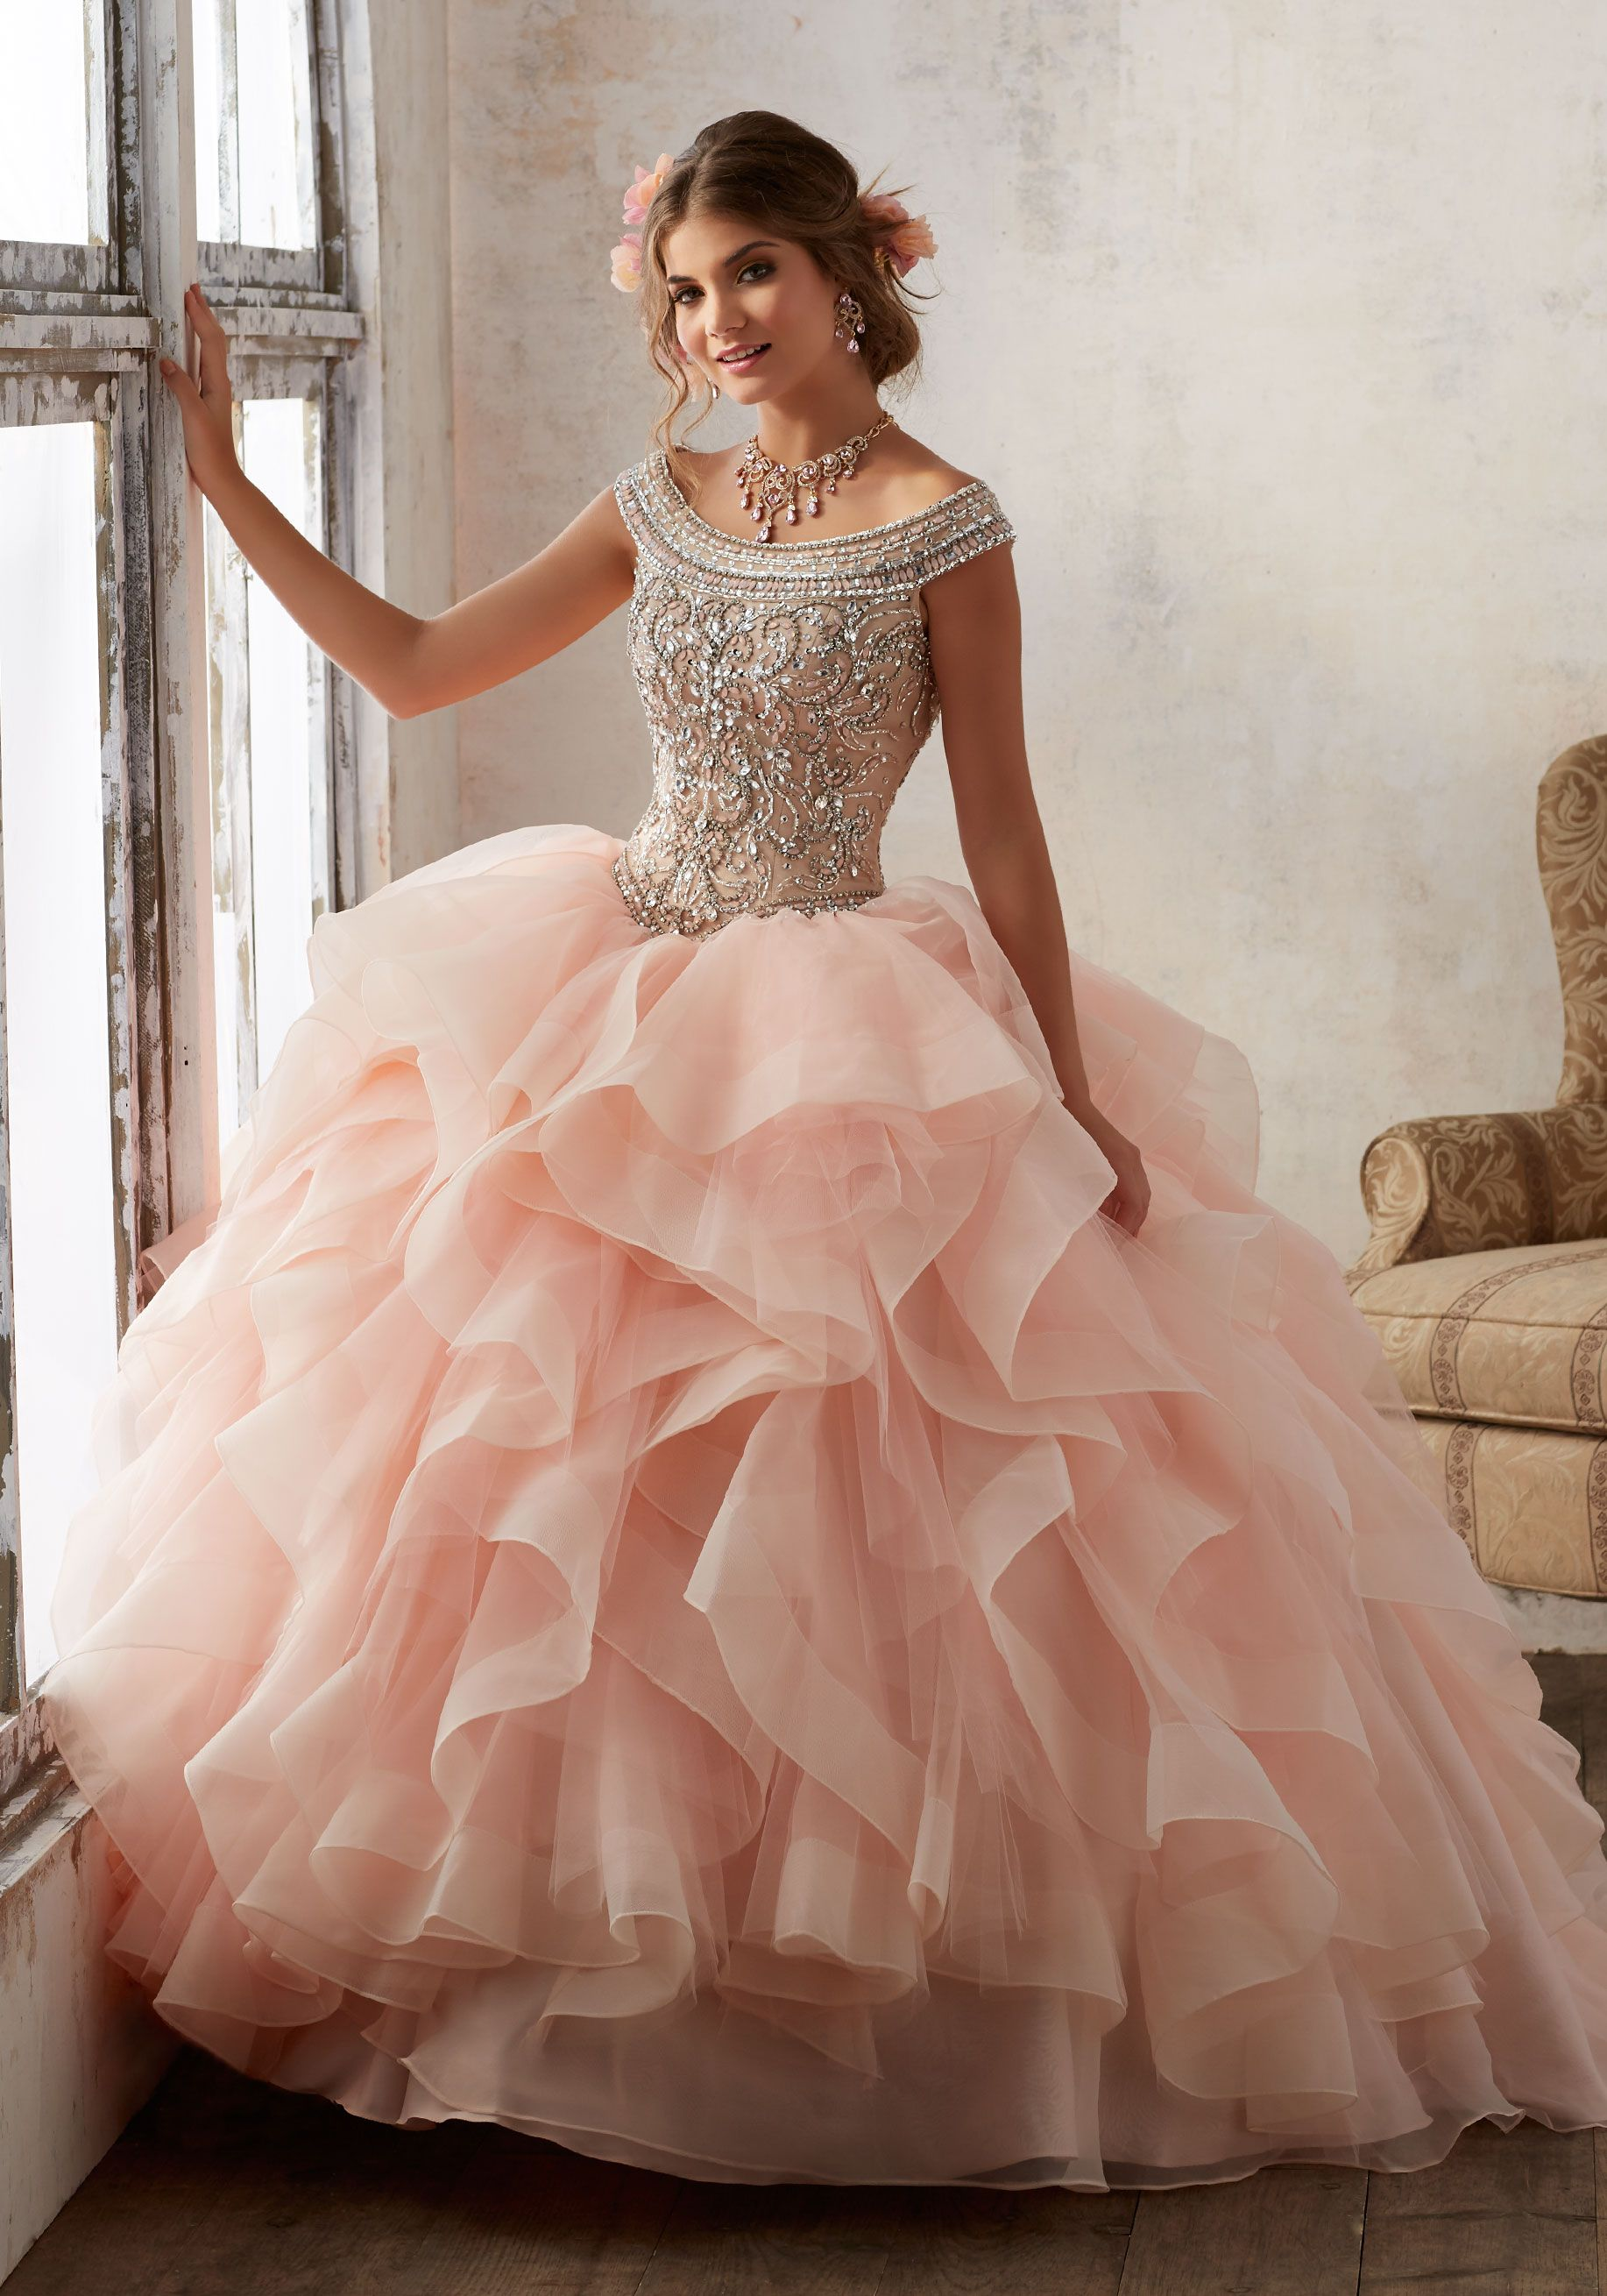 d0bdcd0fc8b Morilee Quinceanera Dresses STYLE NUMBER  89138 Jeweled Beading on a  Flounced Organza Ballgown Beautiful Quinceañera Ballgown featuring a Fully  Beaded ...